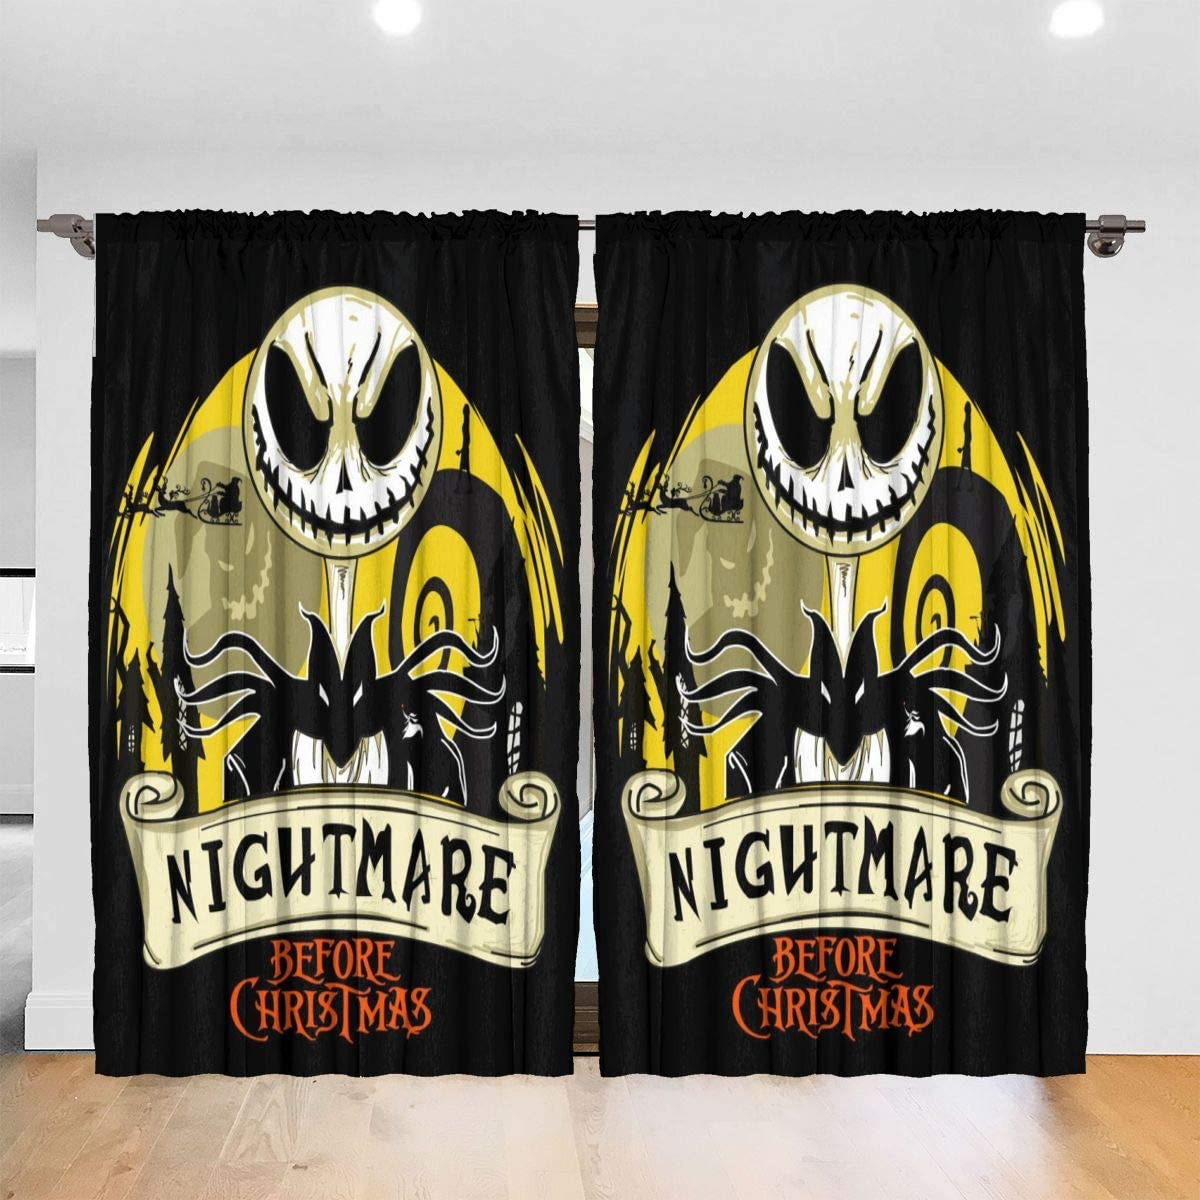 MoralesL-HOME The Nightmare Before Christmas Grommet Top Curtains for Living Room Bedroom Window Treatment Curtain Draperies -52 x 72 inch,2 Panel